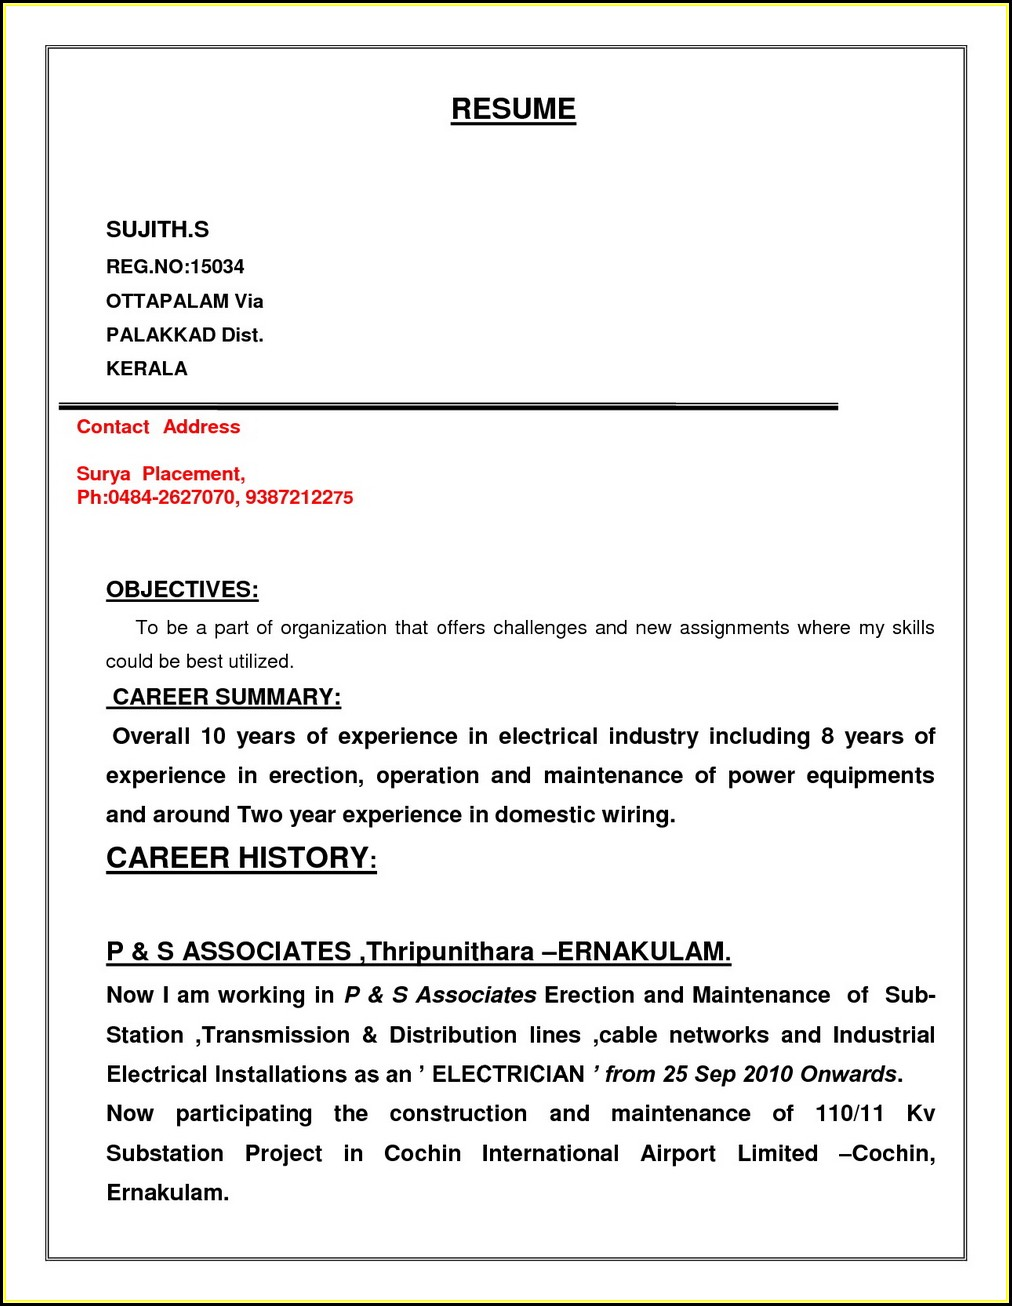 electrician resume pdf best examples word format free study abroad example websites jr Resume Electrician Resume Word Format